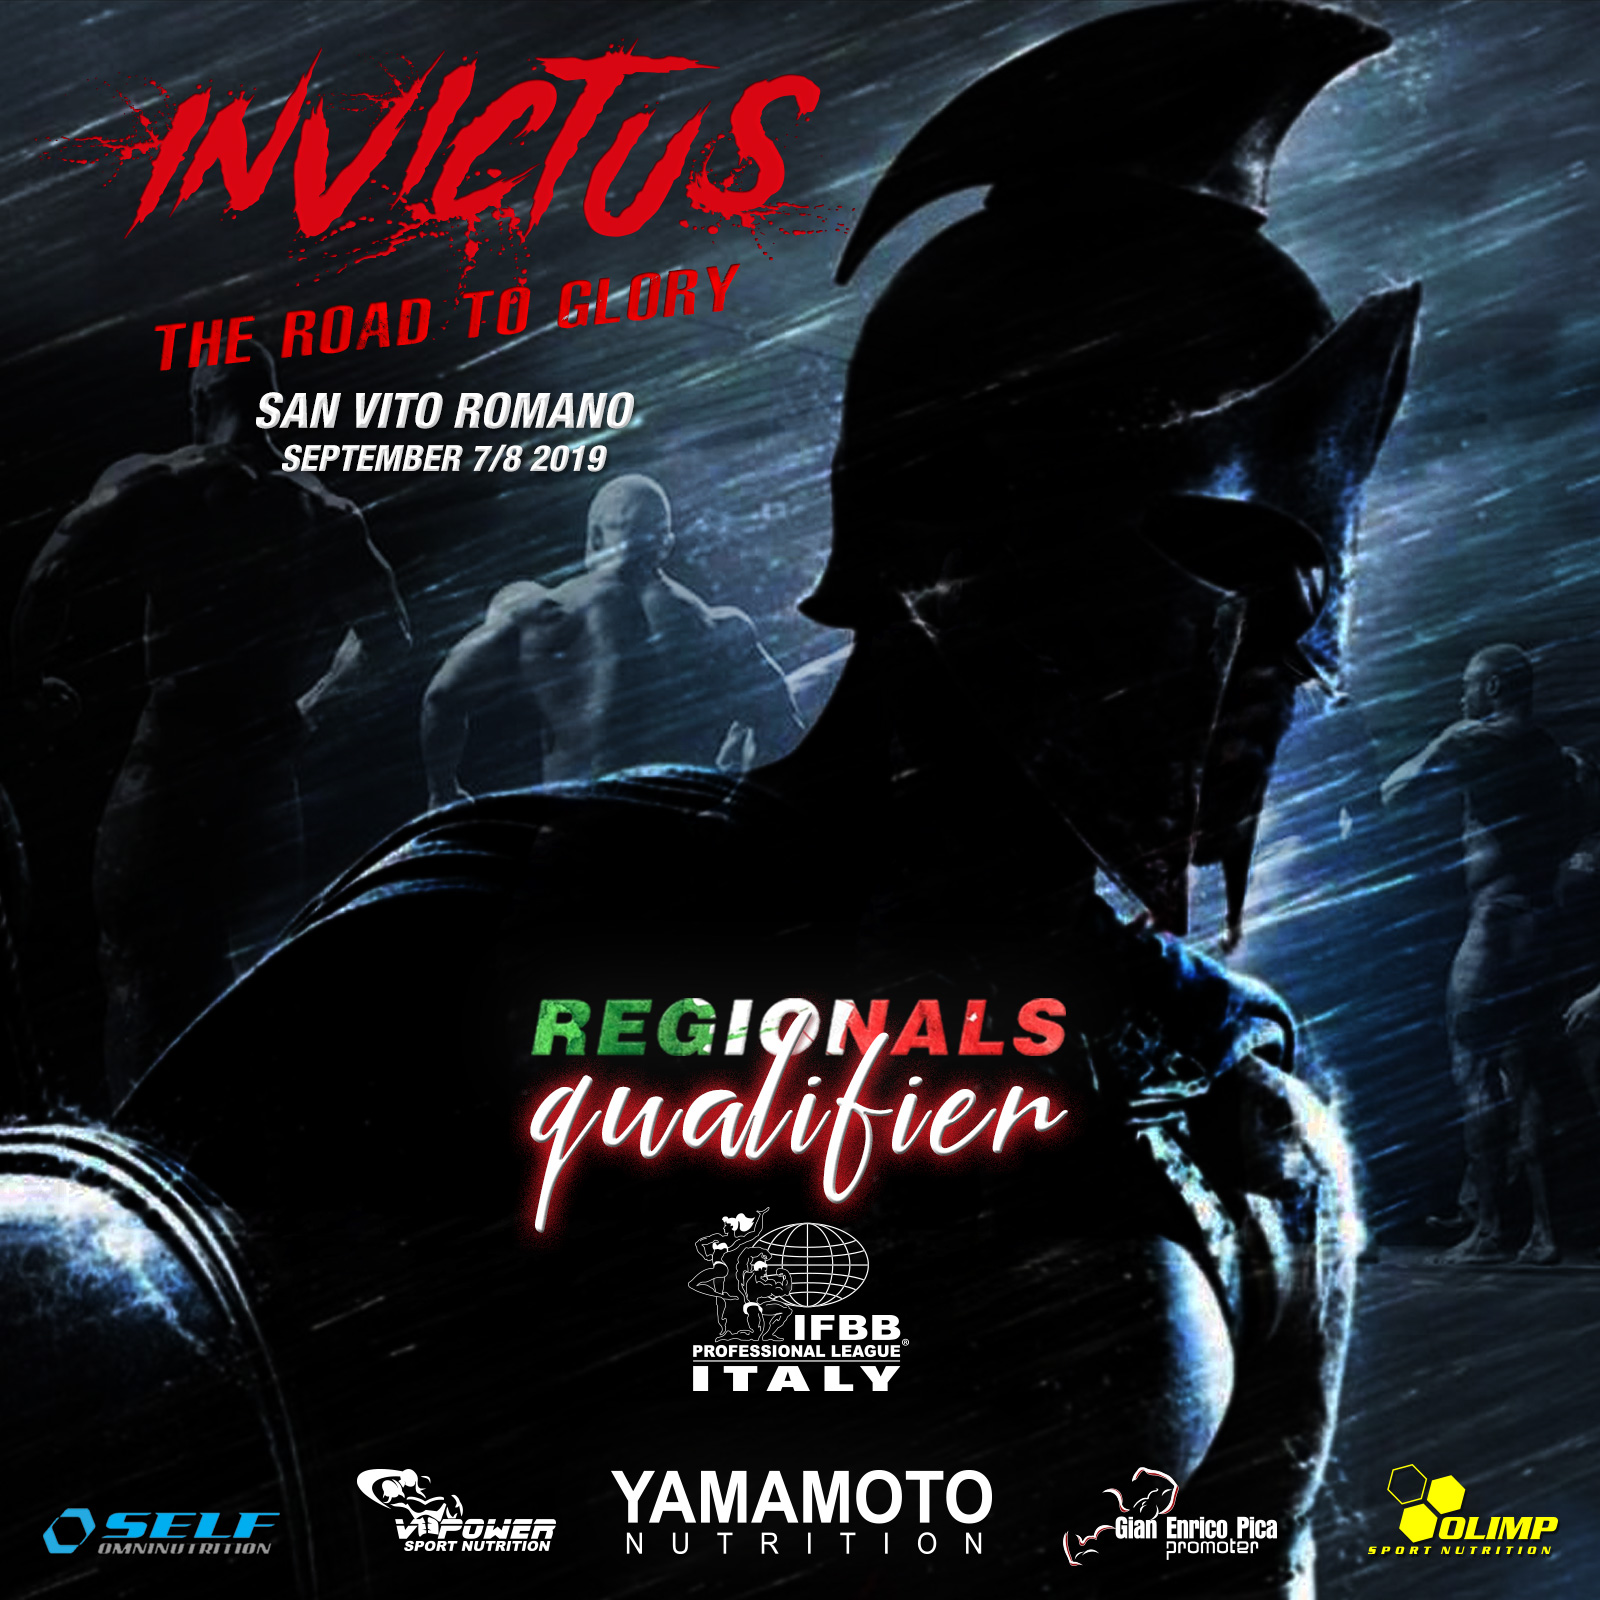 IFBB Pro League Regionals San Vito Romano - Invictus-The road to glory